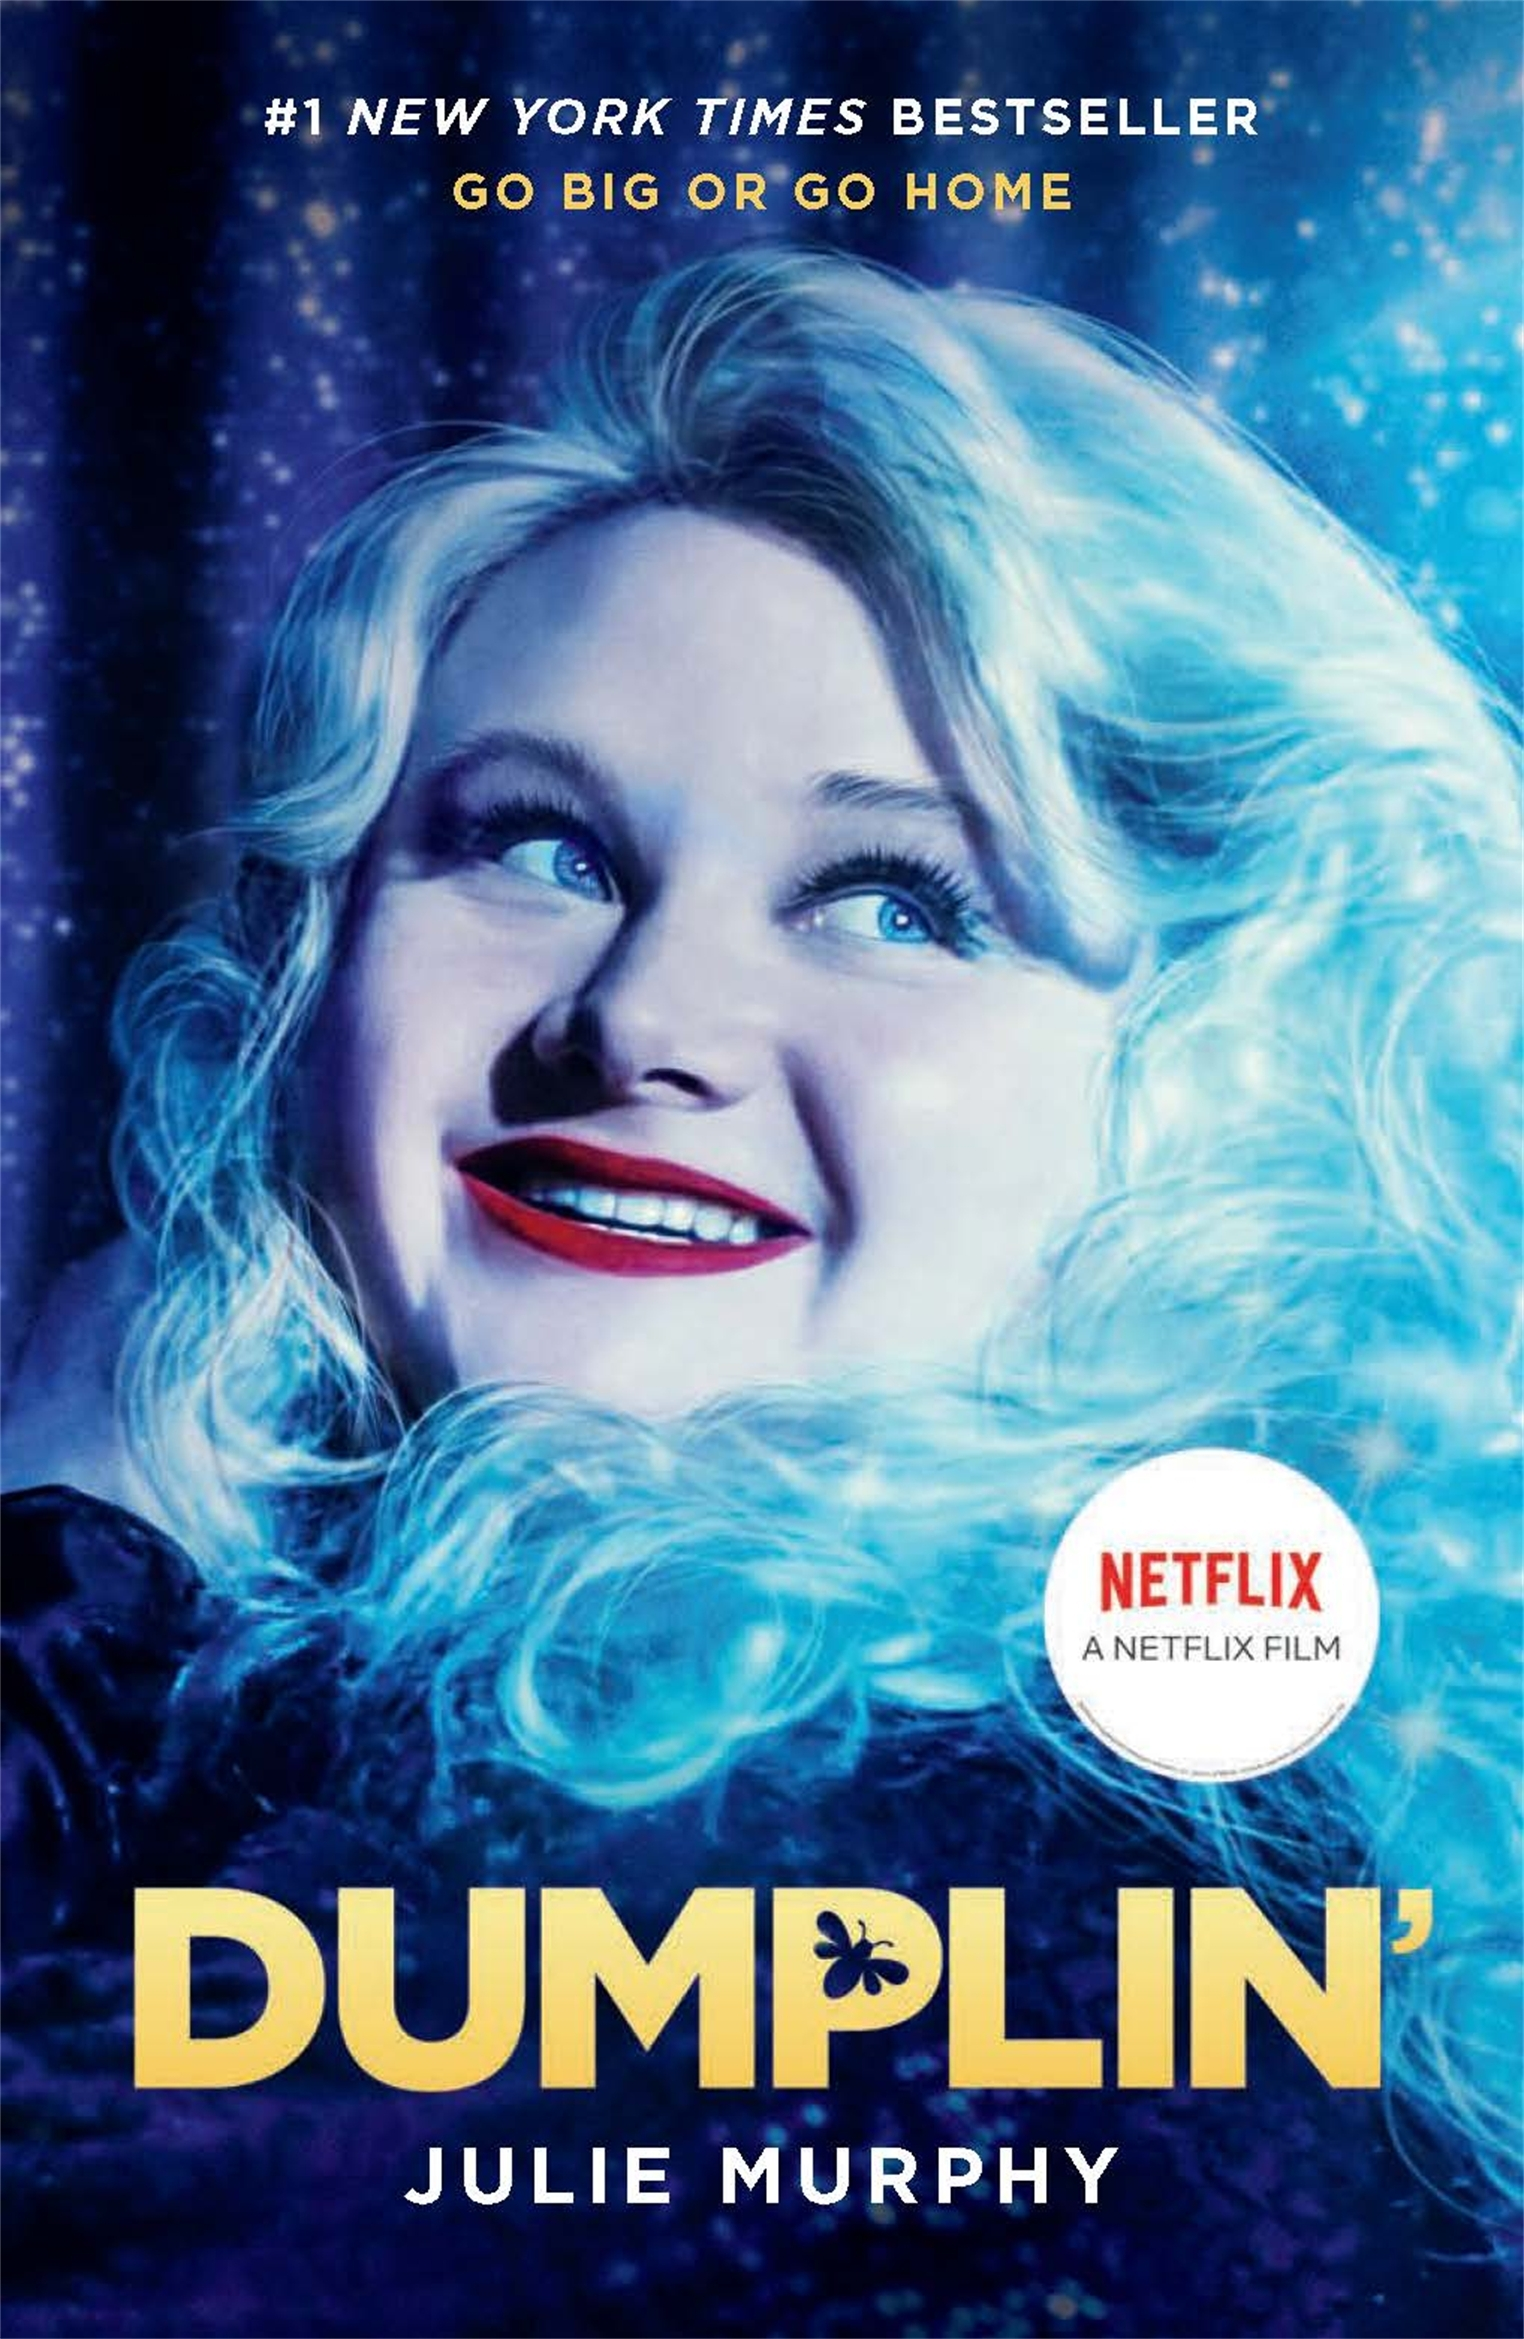 Dumplin' by Julie Murphy - Penguin Books Australia